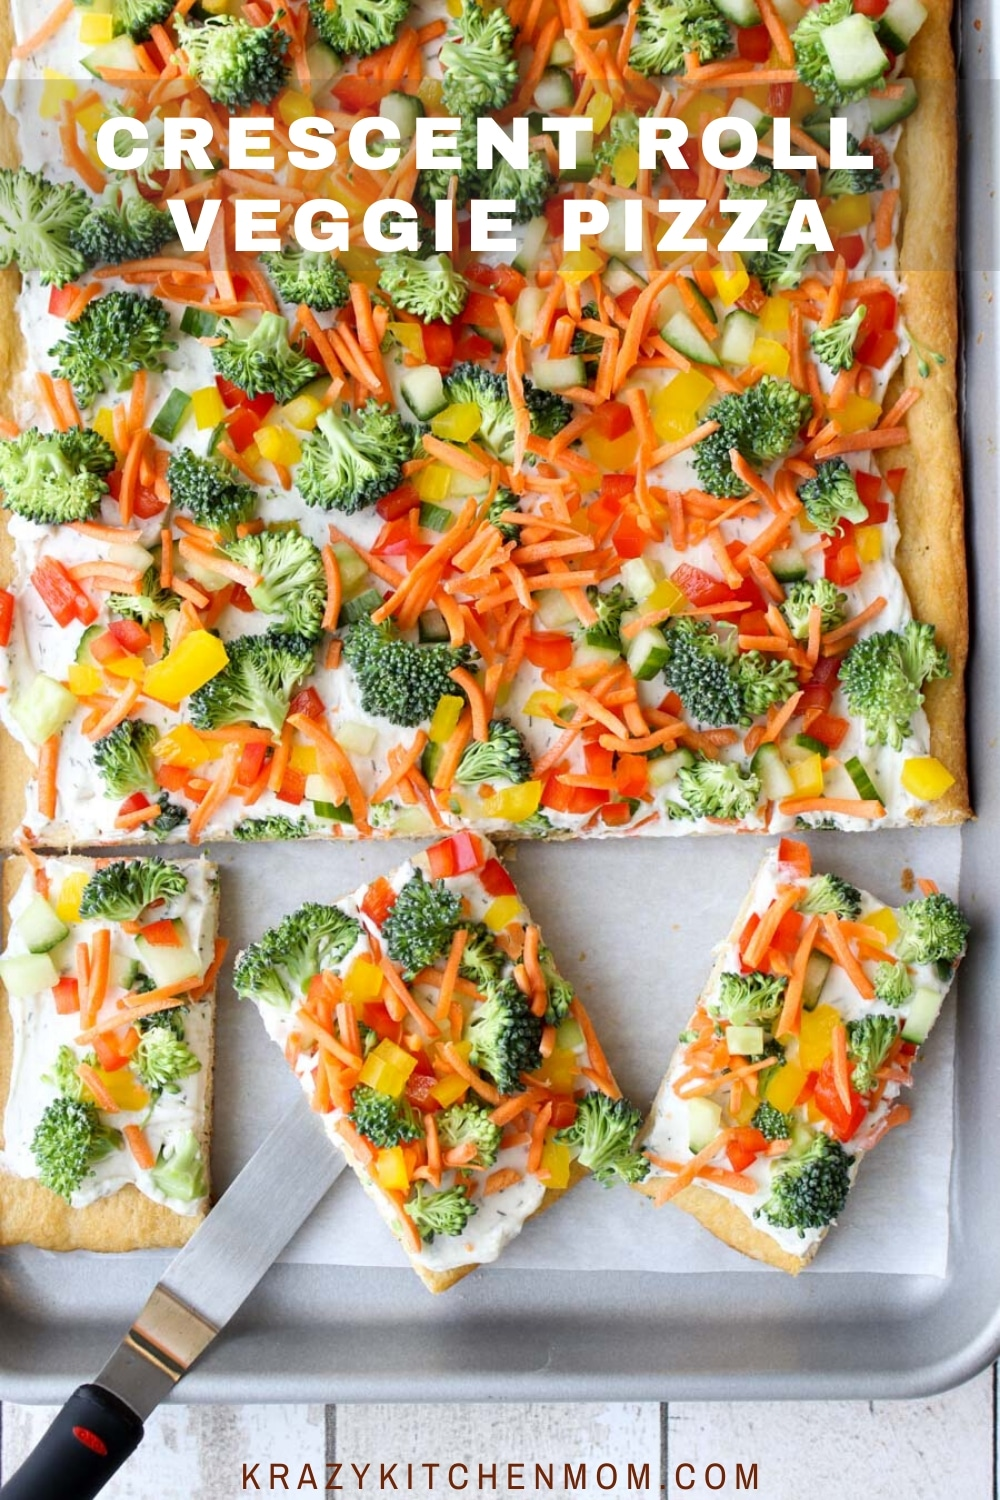 A flakey crust topped with creamy herby dill dip and topped with fresh vegetables. It's perfect for a light lunch or a party appetizer any time of the year. via @krazykitchenmom